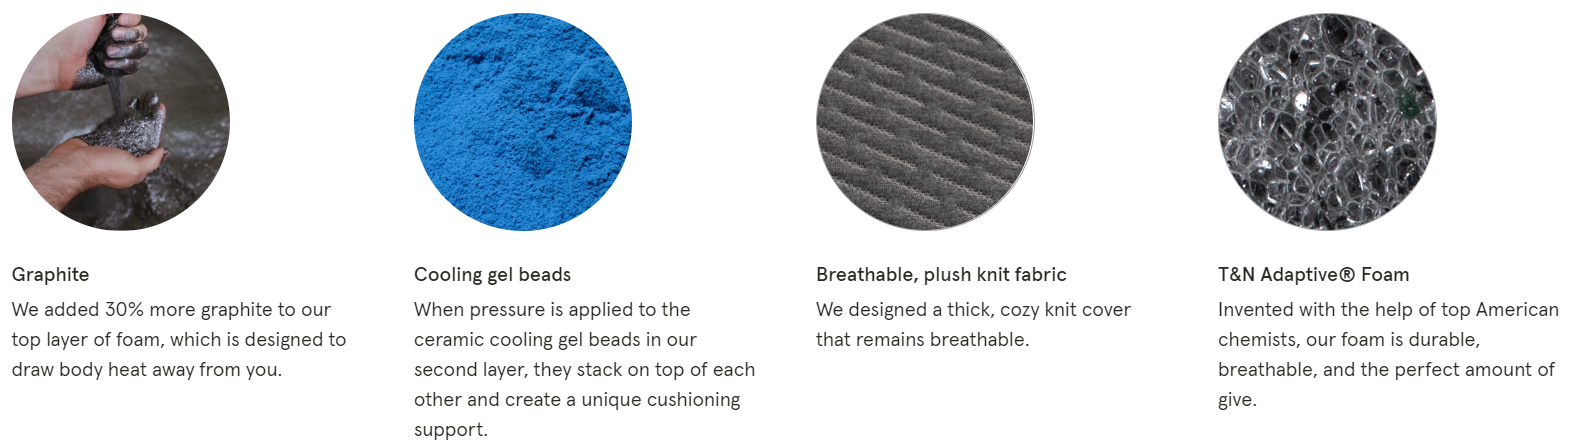 tuft and needle quality materials